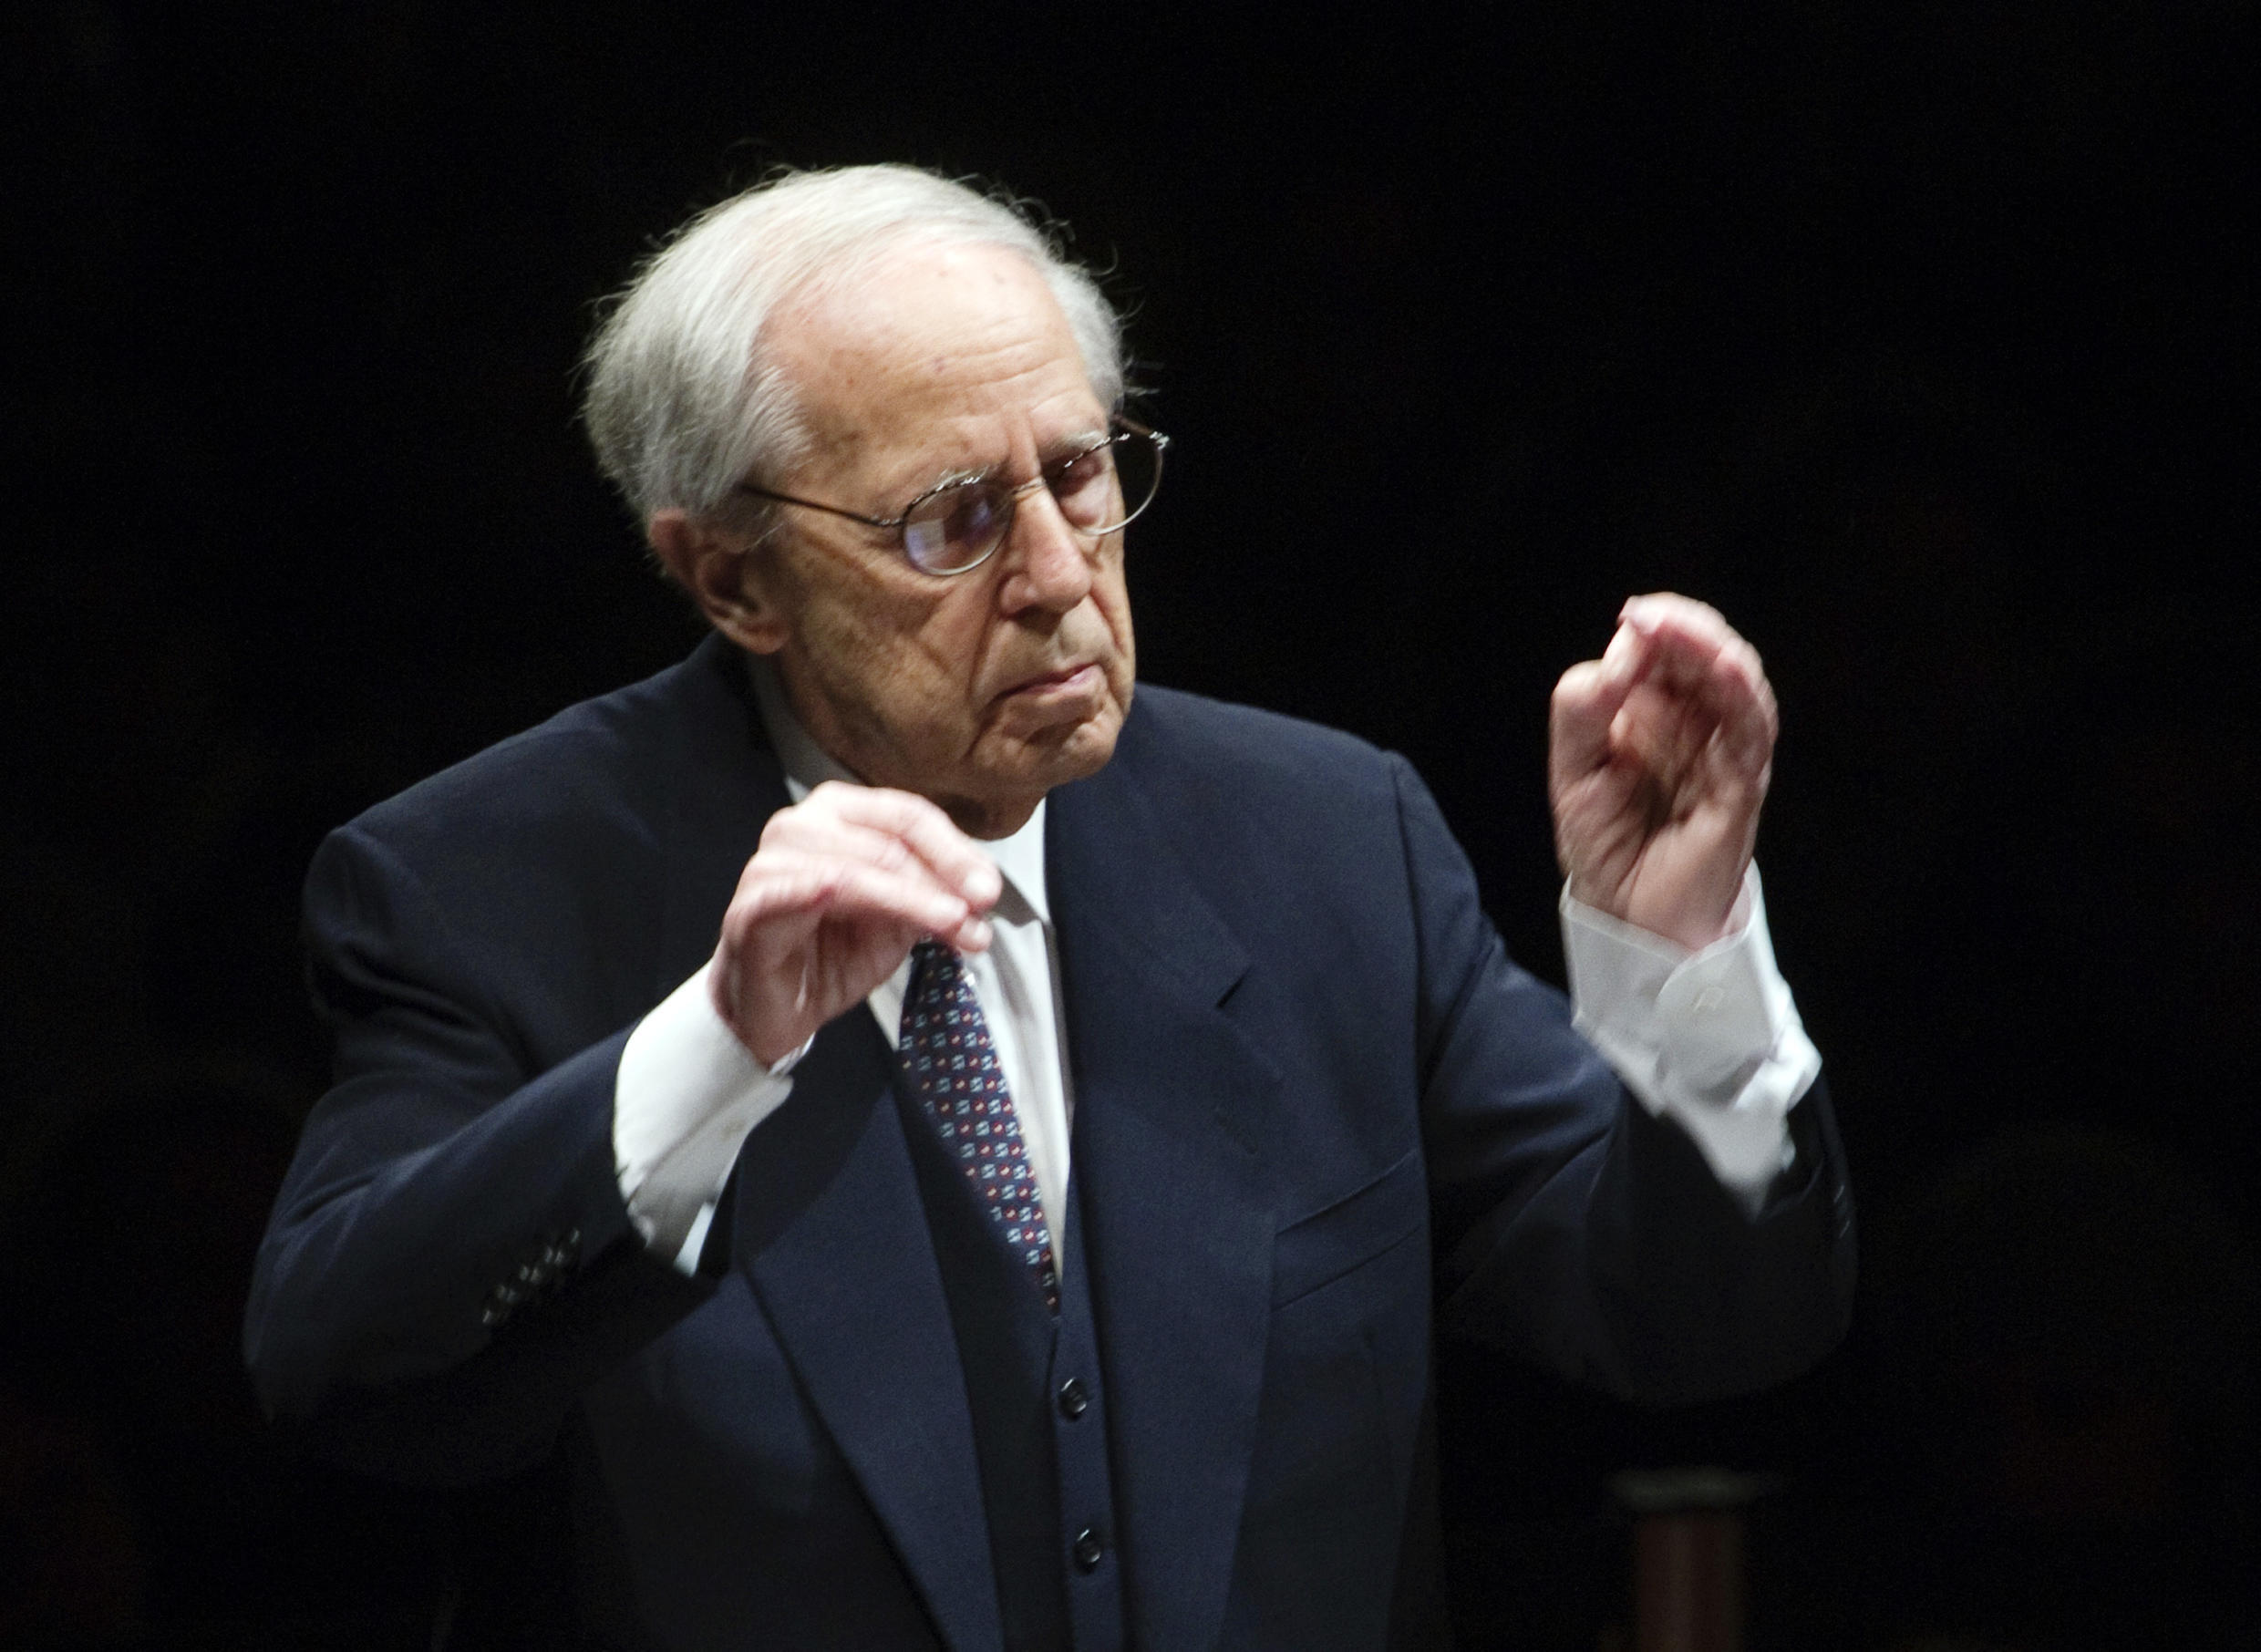 Pierre Boulez conducting at the Pyramide du Louvre on 21 December 2011